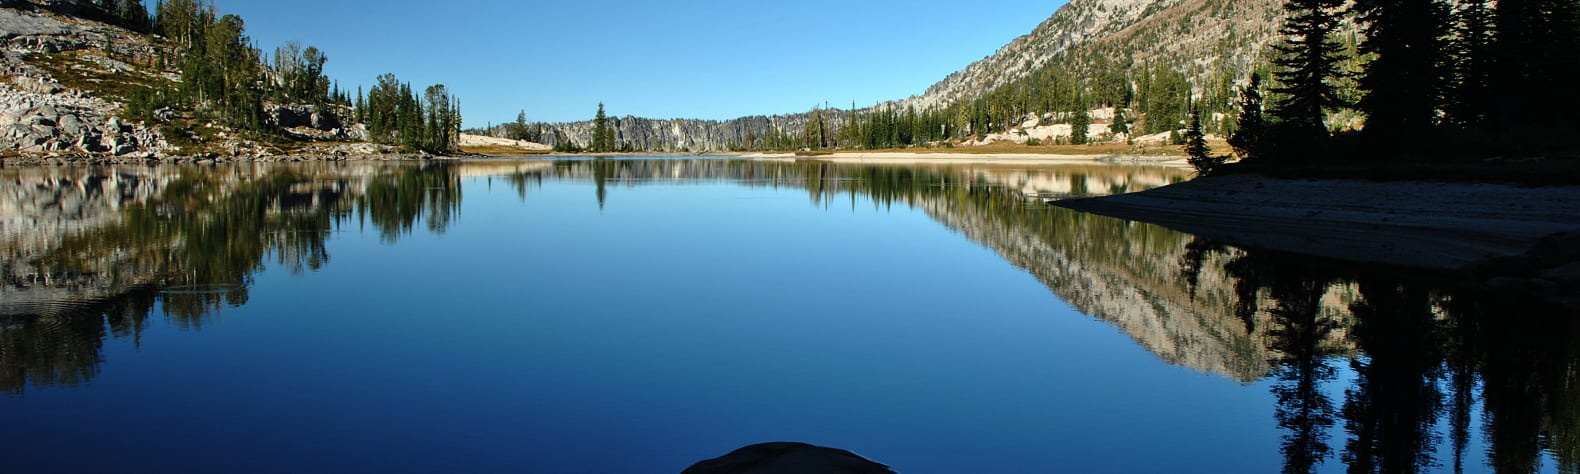 Best Camping in and Near Wallowa-Whitman National Forest